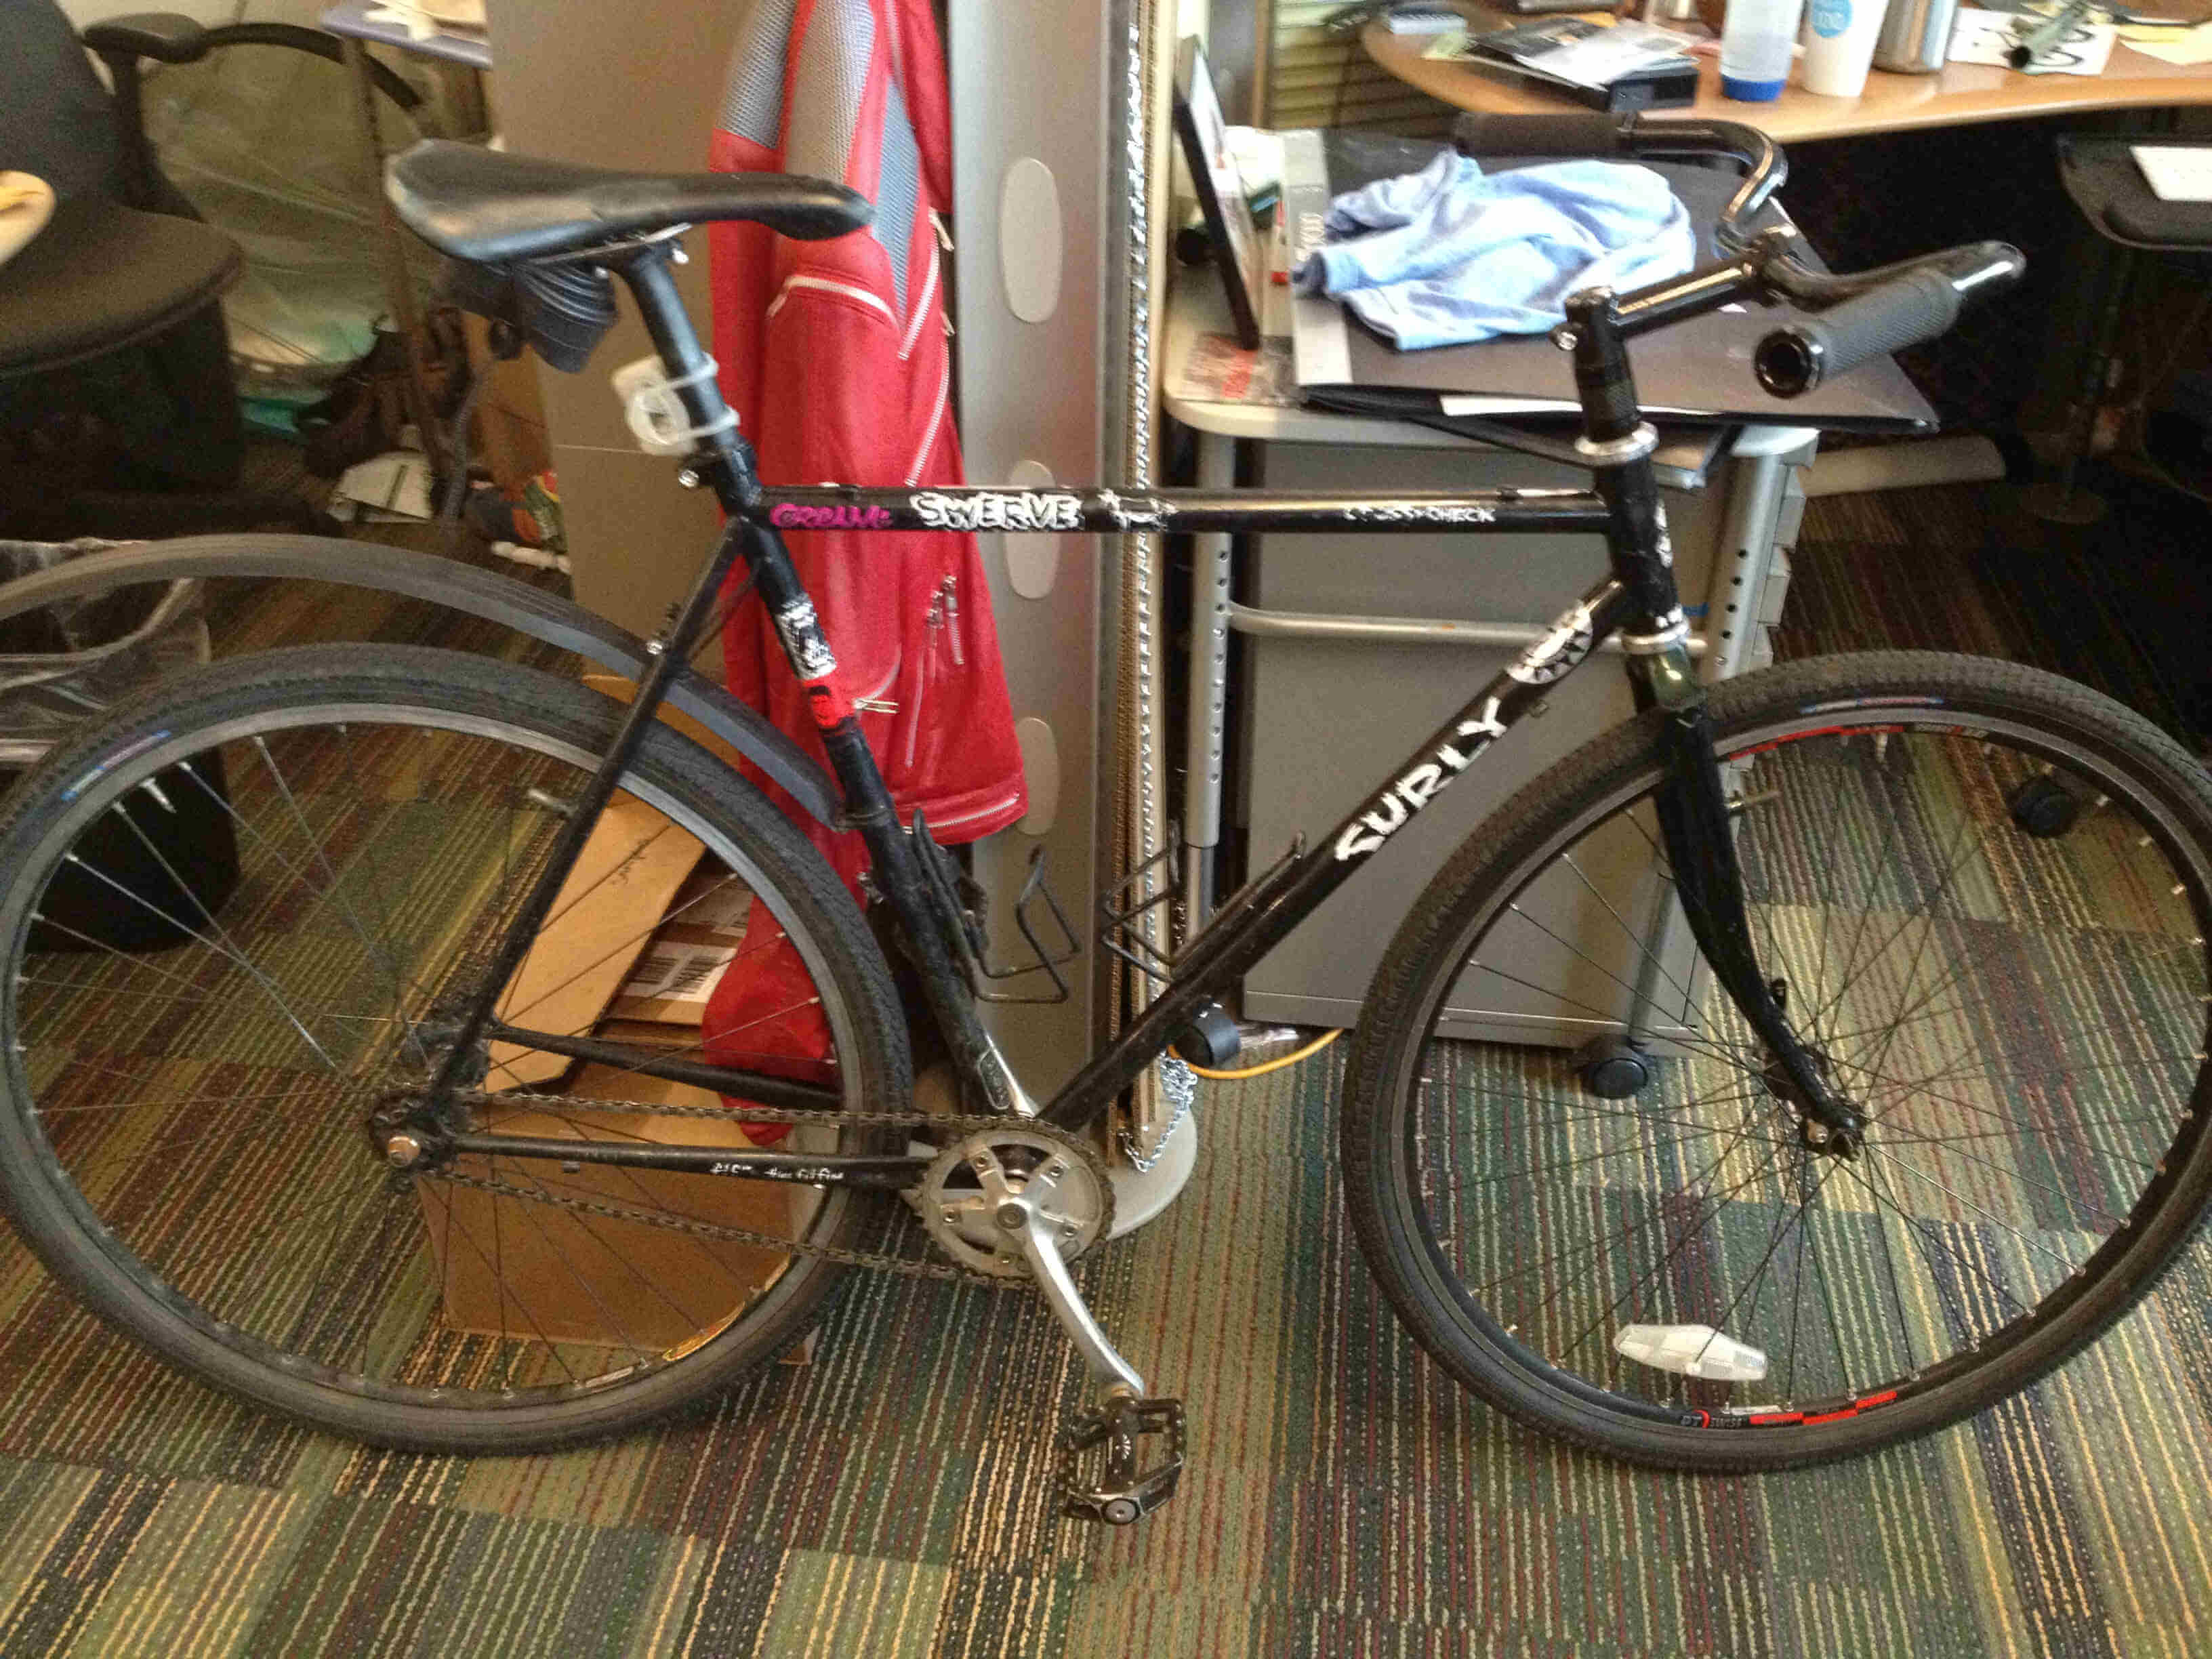 Right side view of a black Surly Cross Check bike, leaning on the end of a cubicle wall, in an office